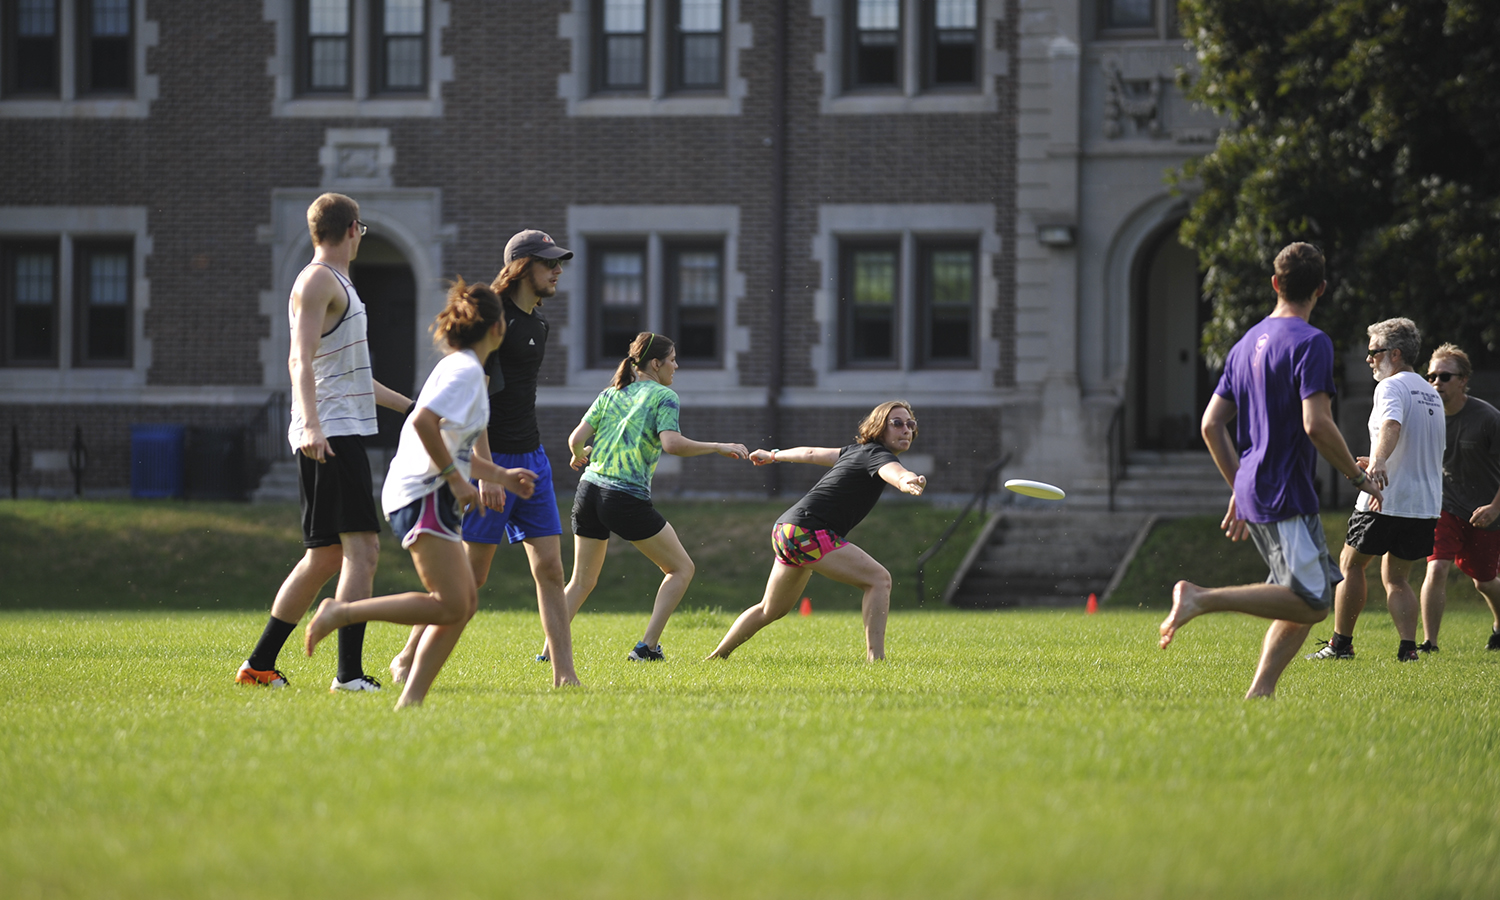 Summer Ultimate Frisbee 305